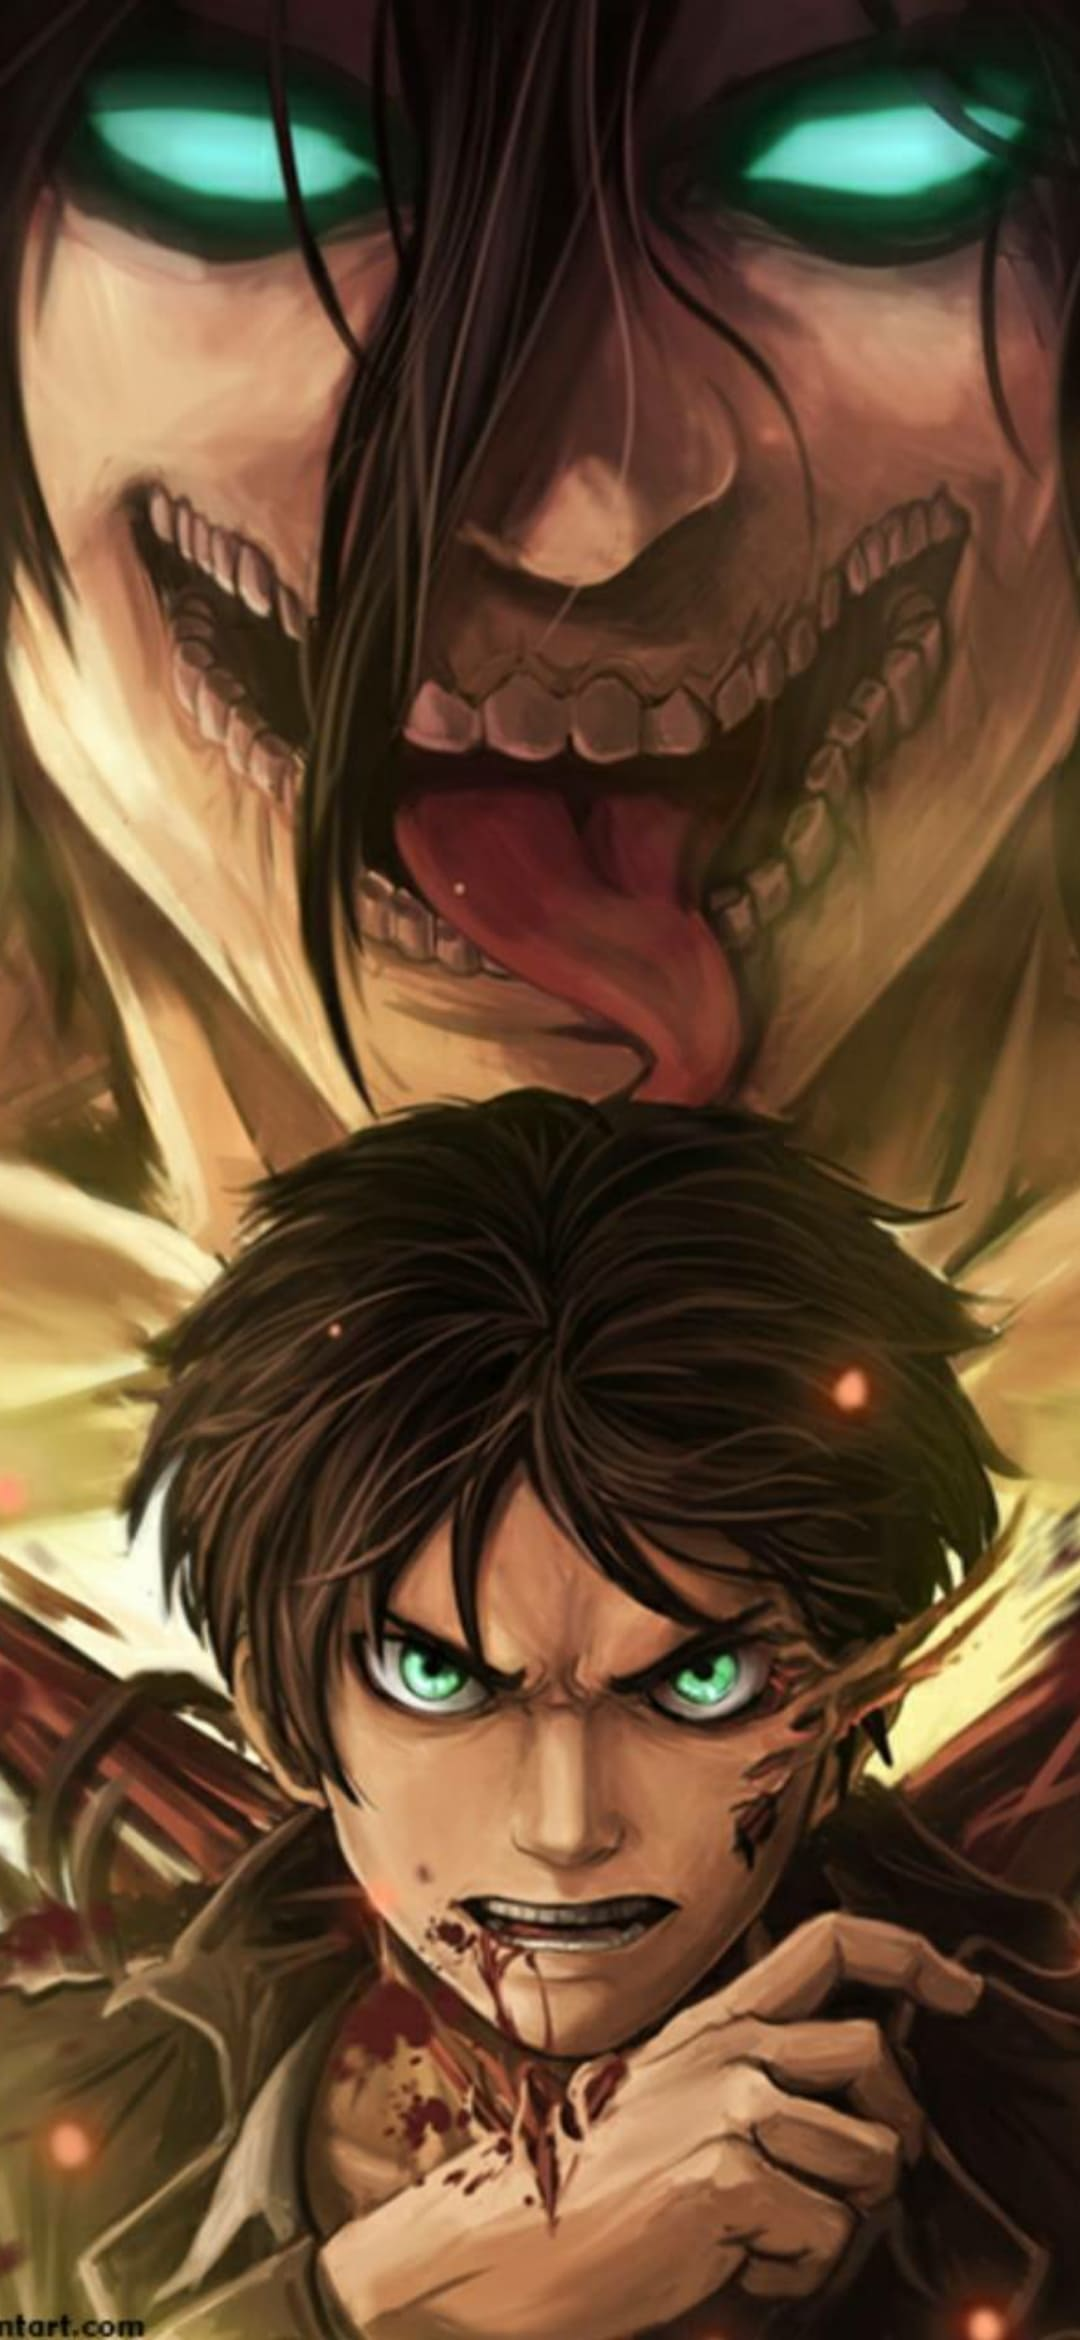 Attack On Titan Wallpapers Top 65 Best Attack On Titan Backgrounds Download